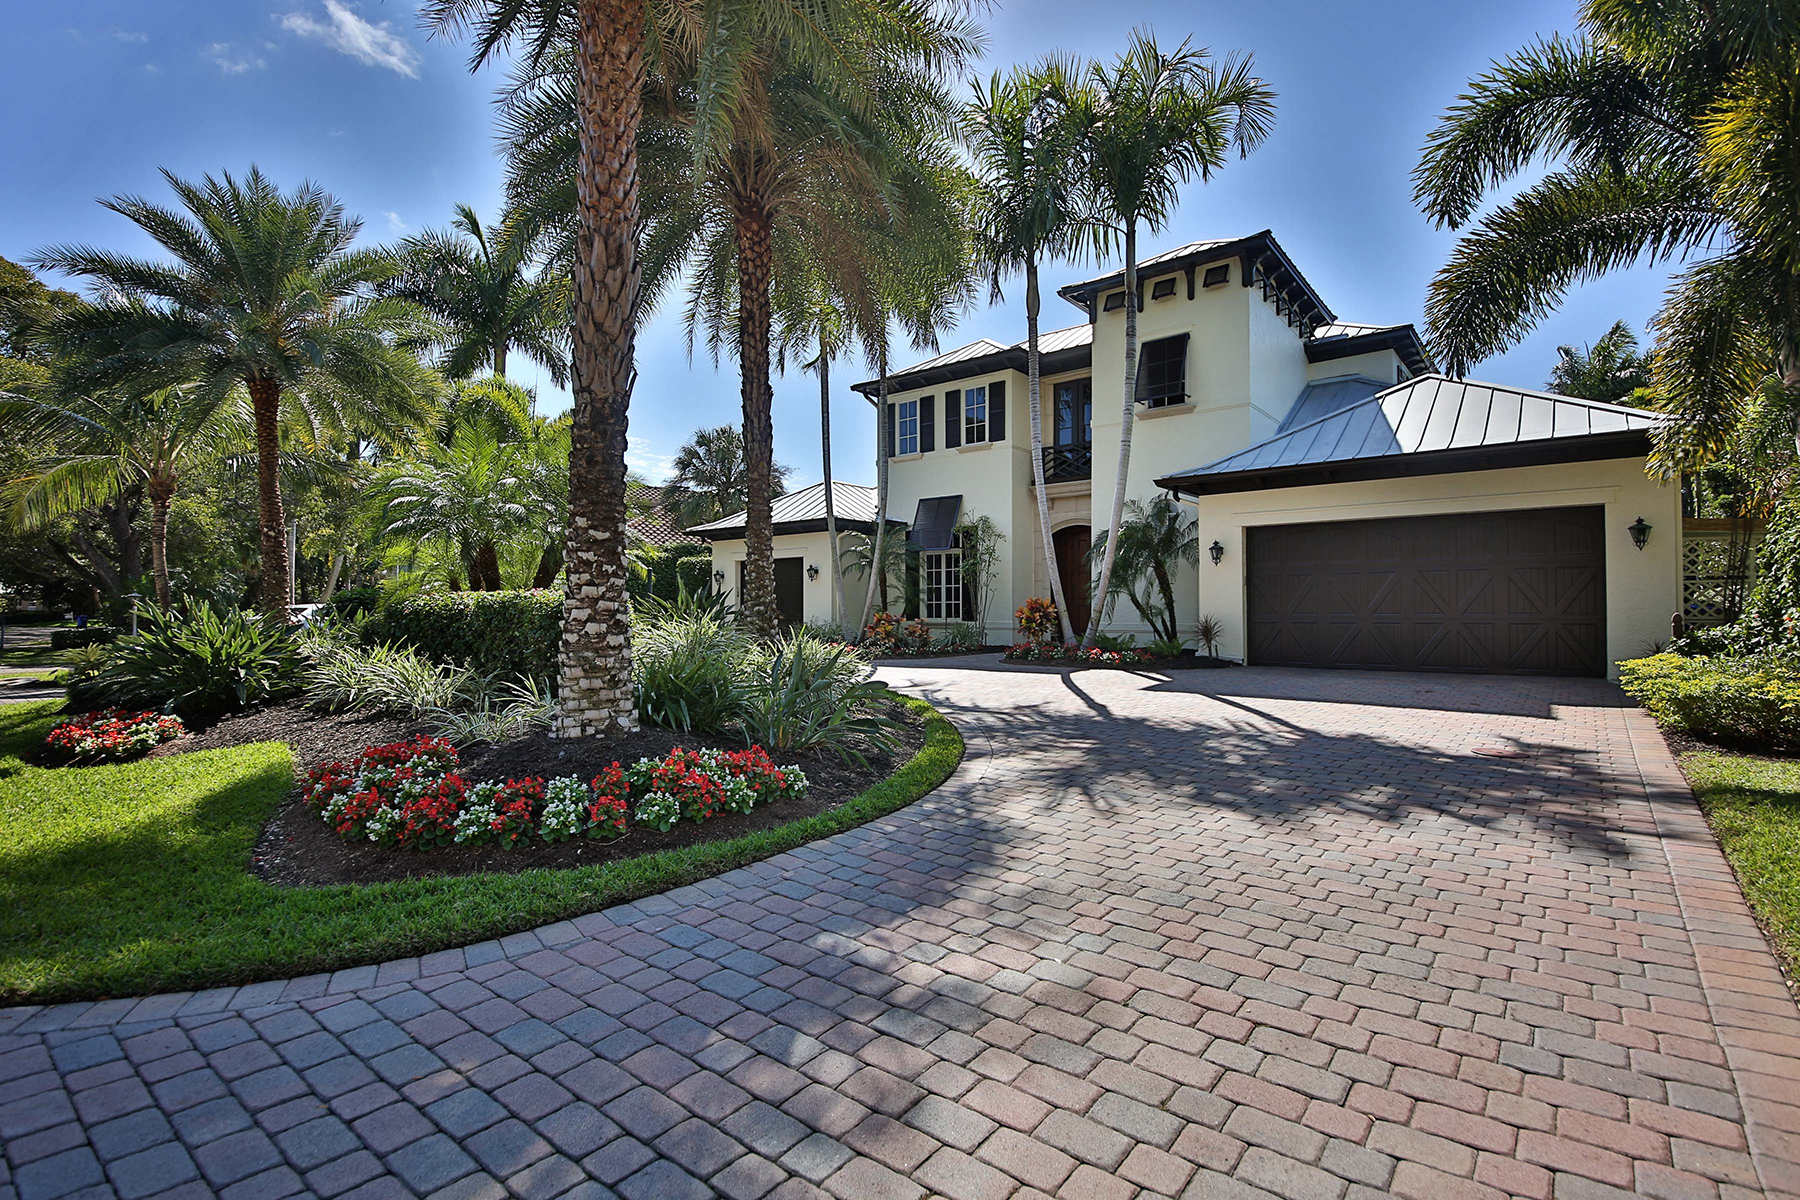 Additional photo for property listing at OLDE NAPLES 596  6th Ave  N,  Naples, Florida 34102 United States